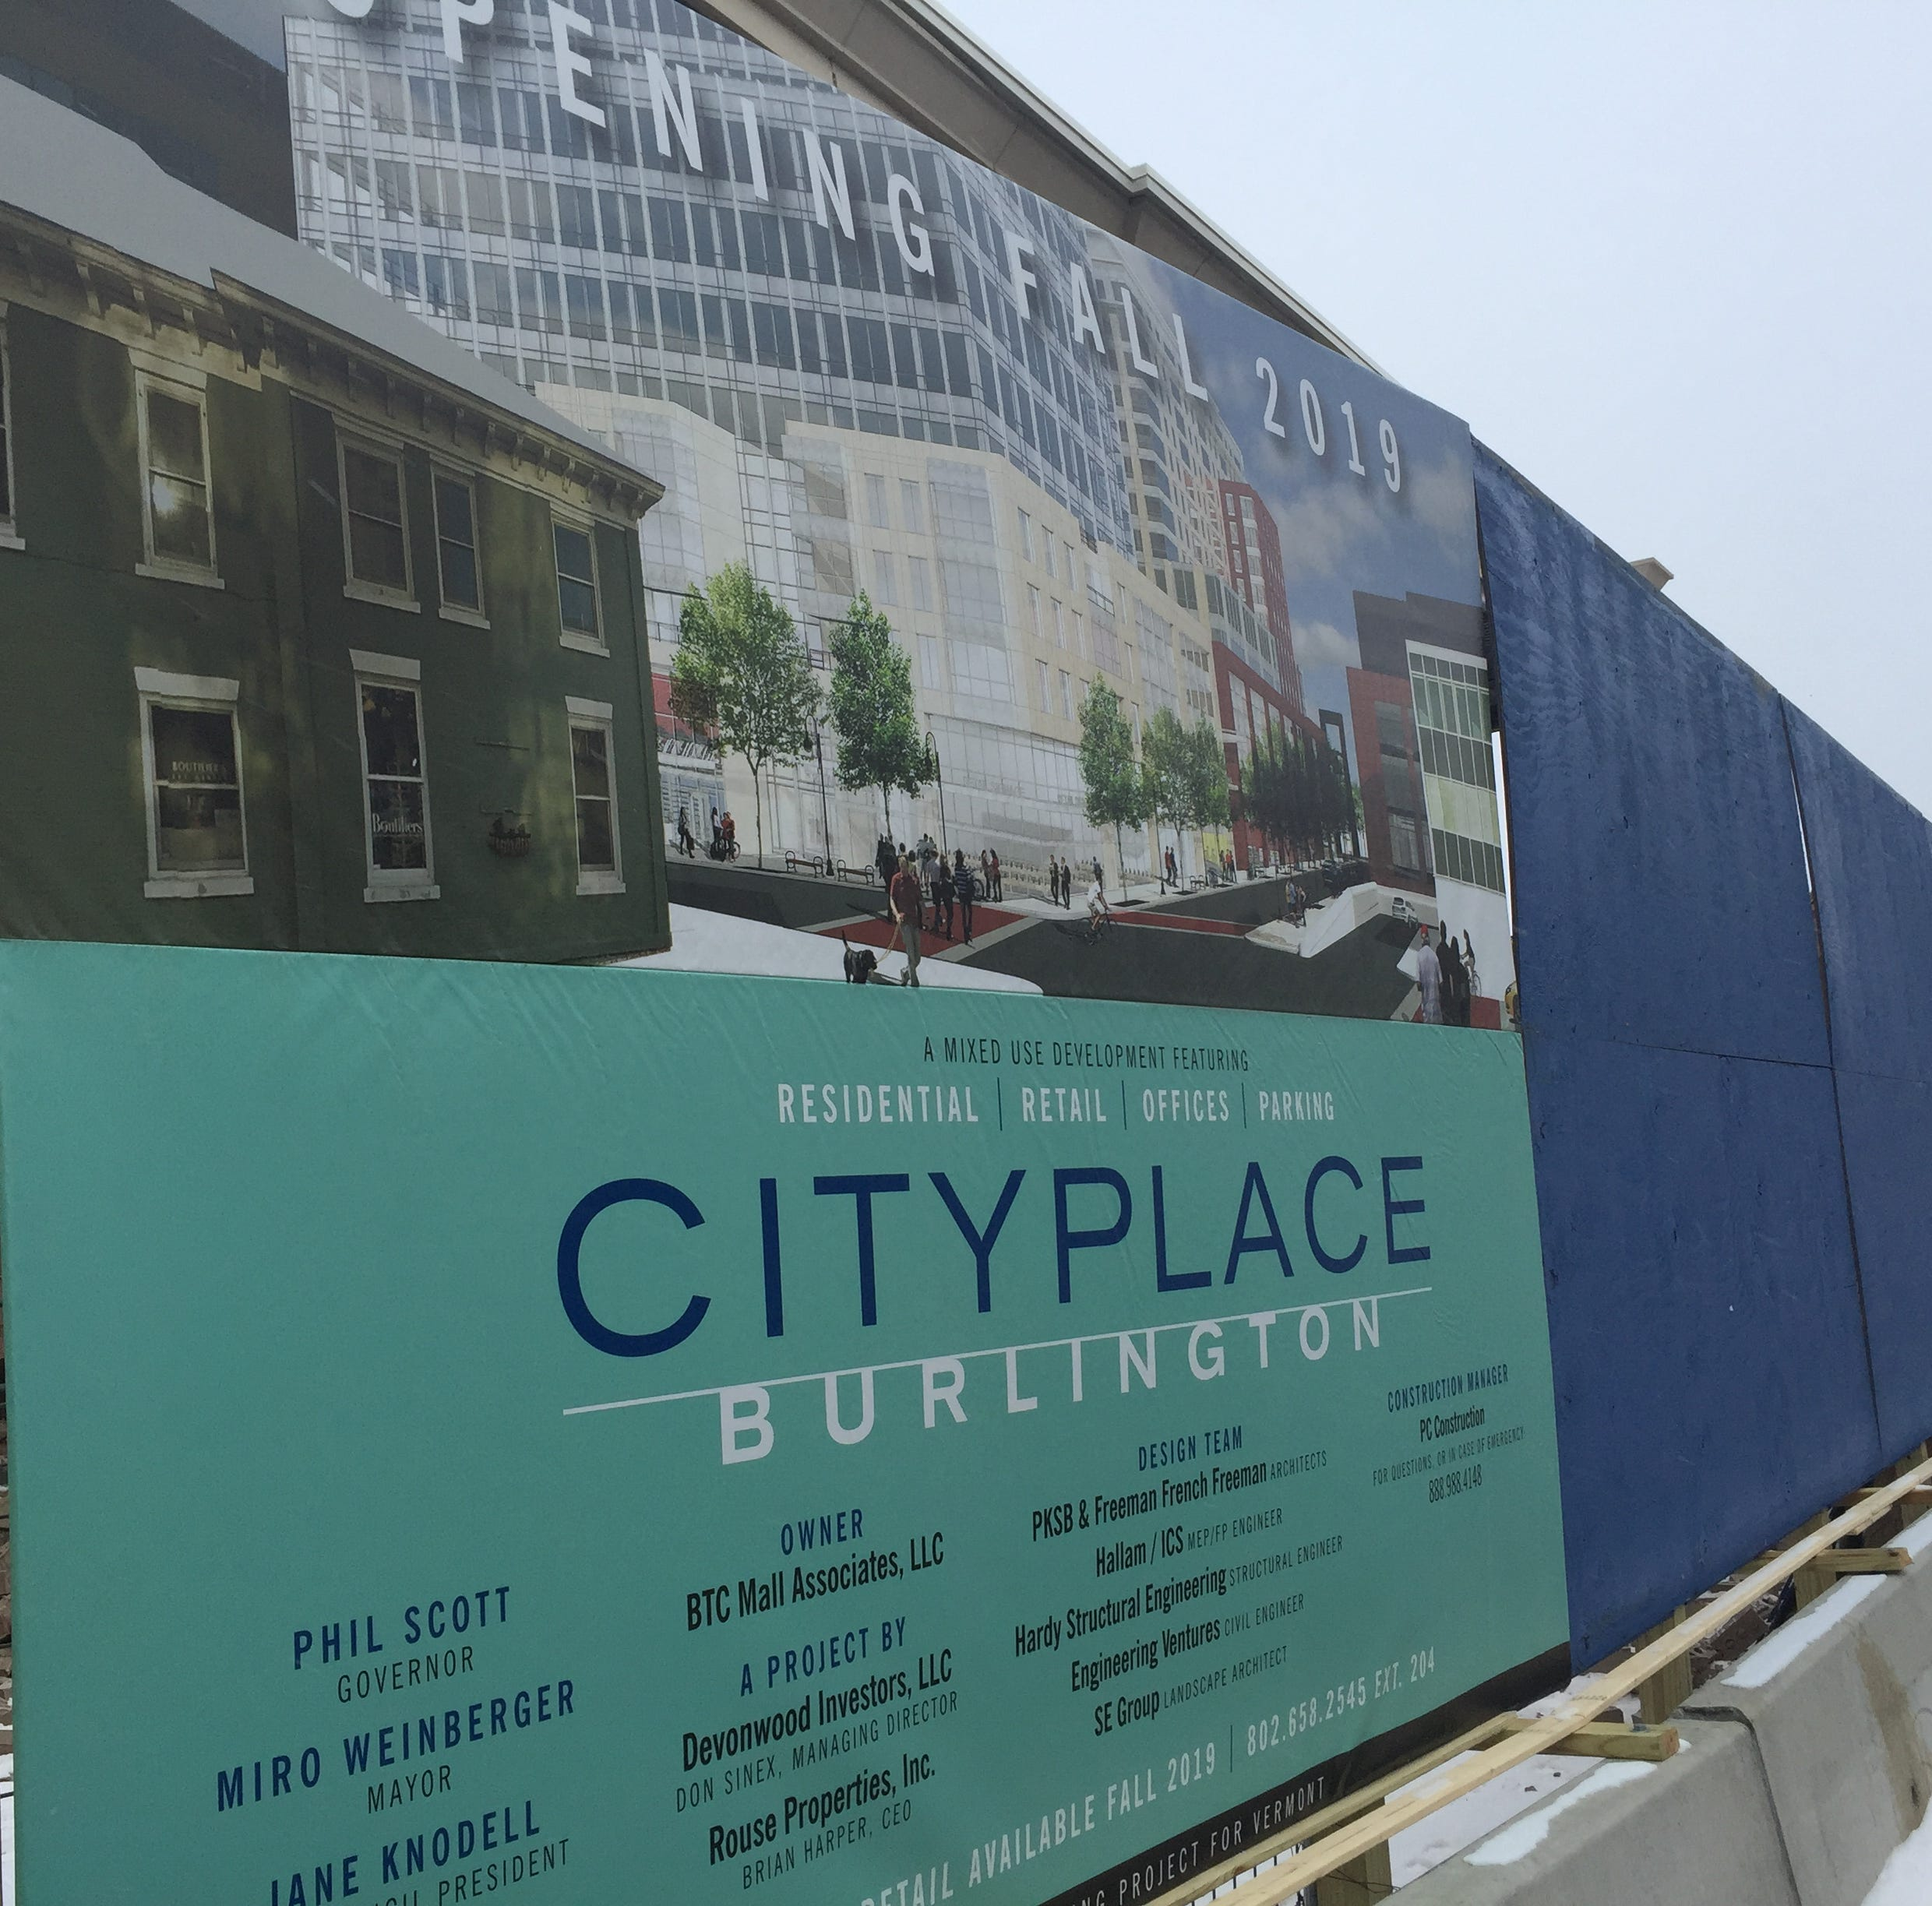 City councilor speaks out about Don Sinex and CityPlace: 'He blatantly lied.'